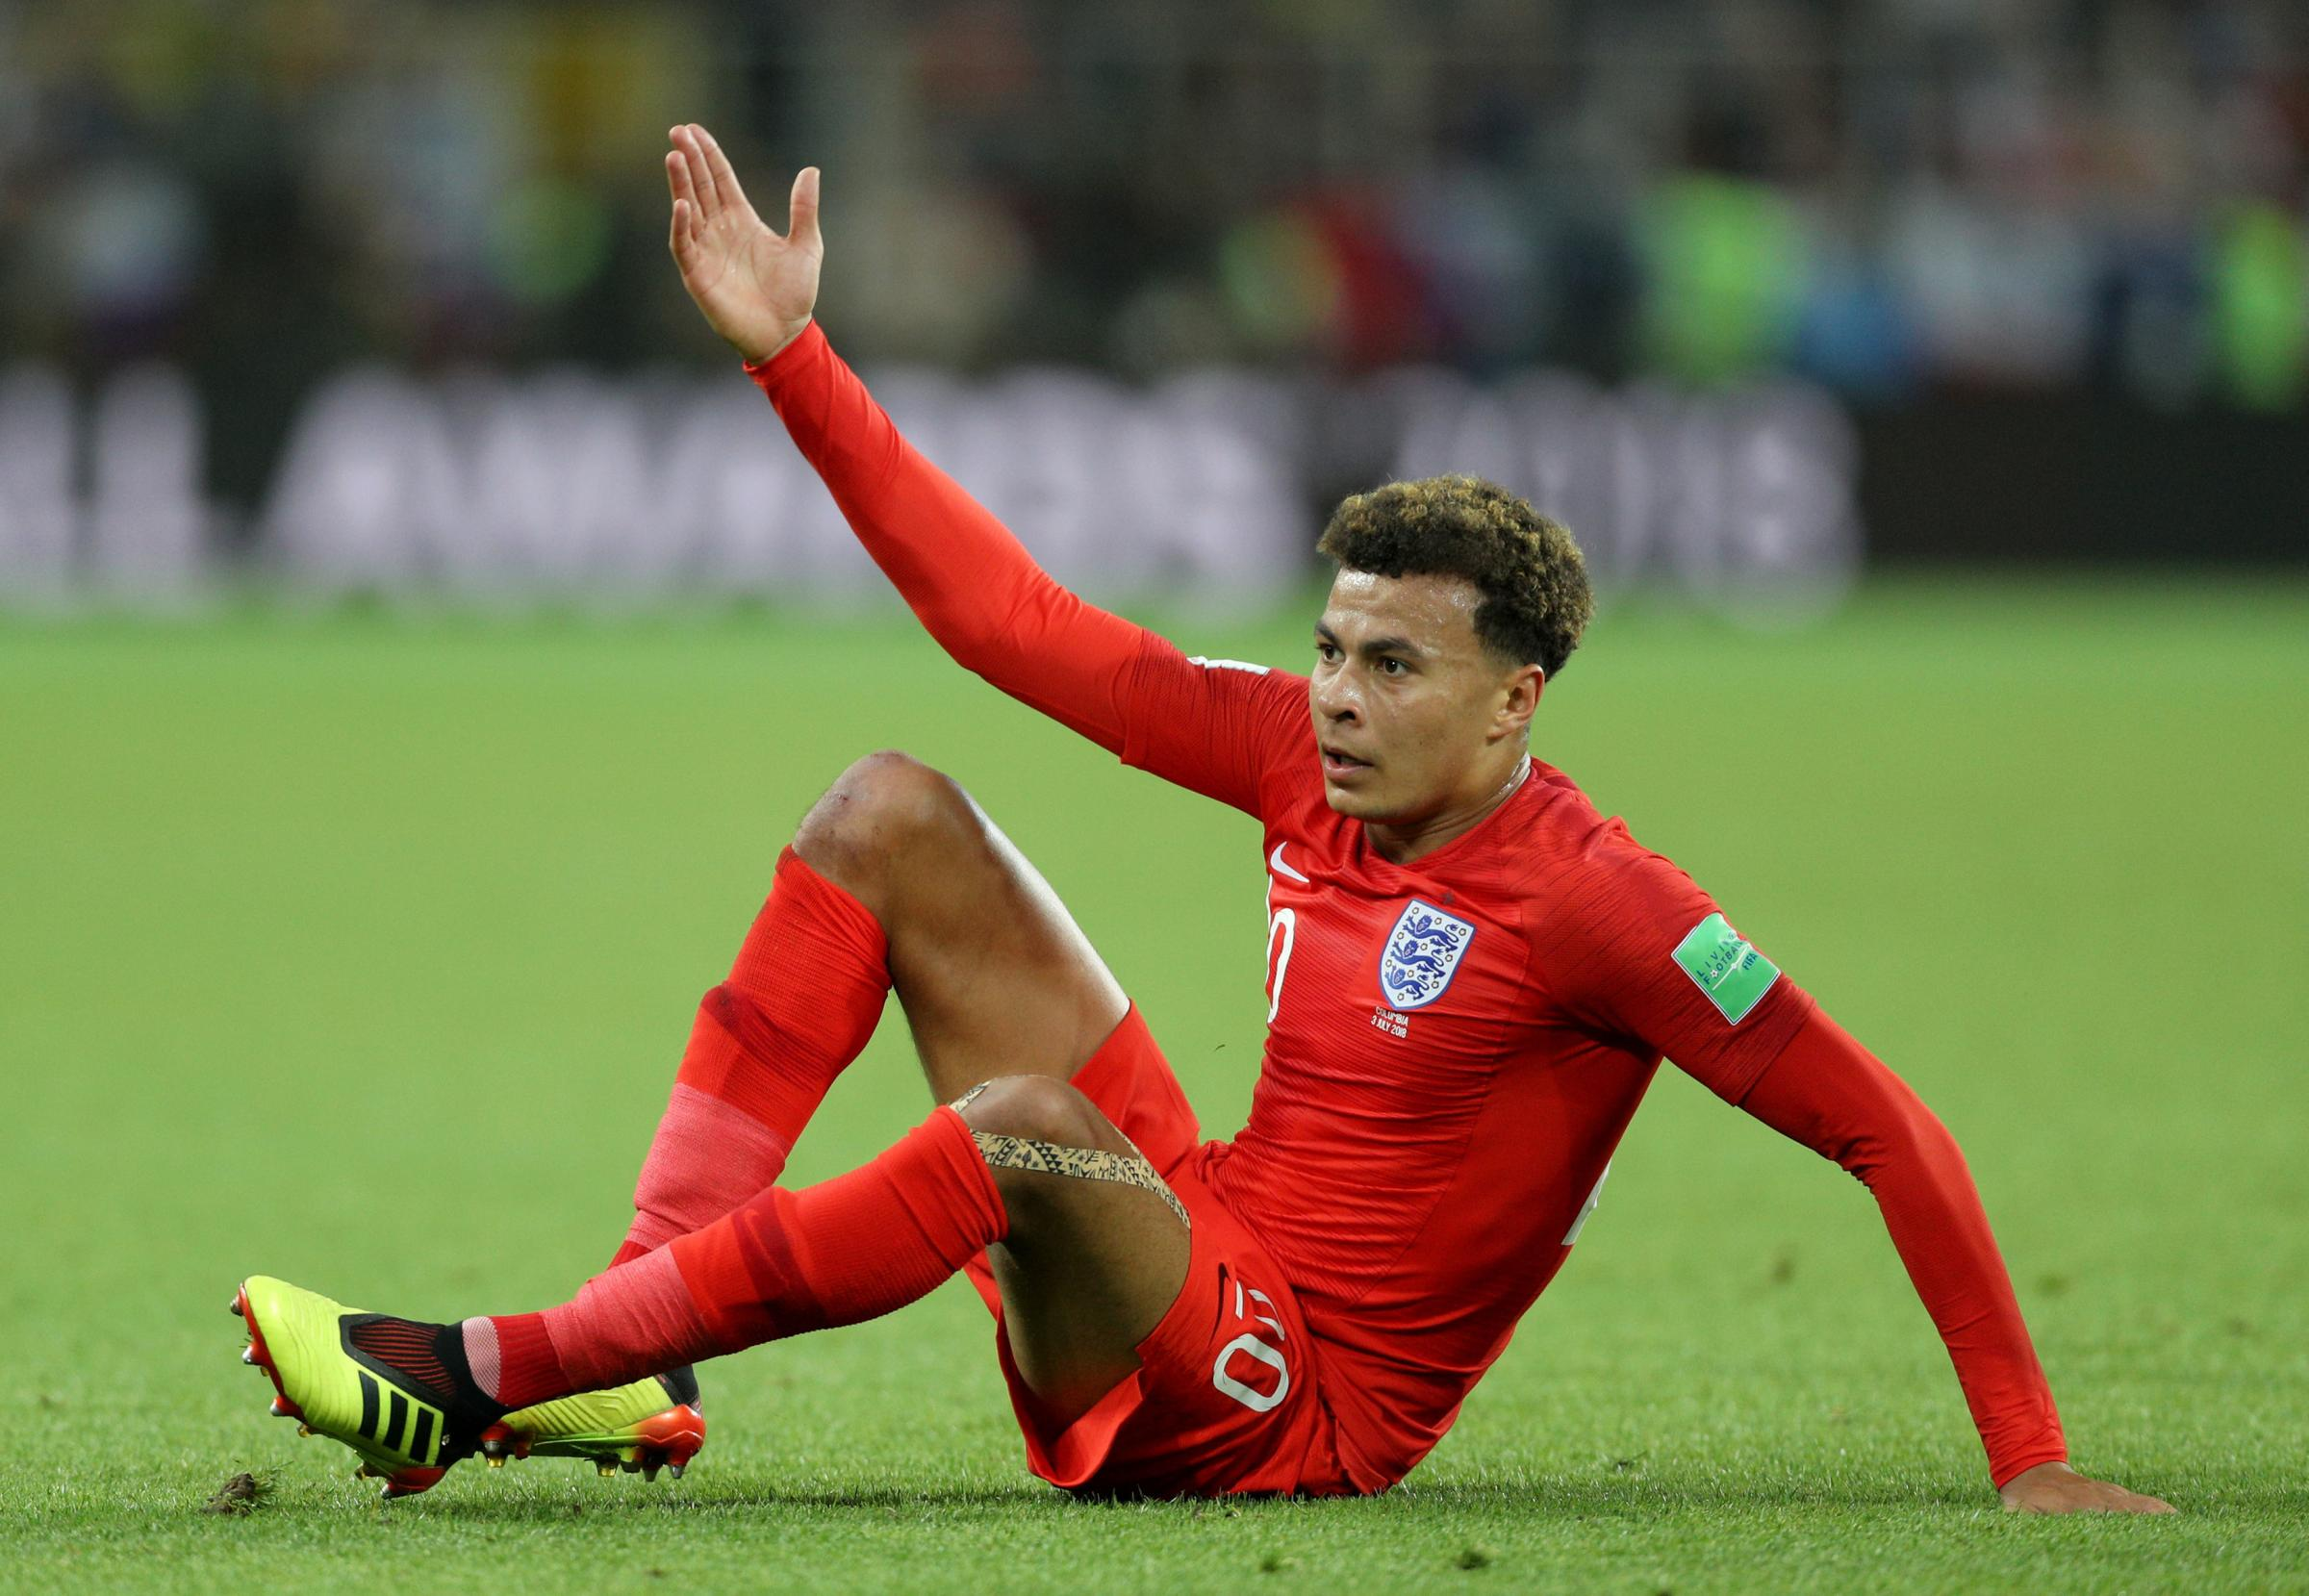 Dele Alli scored at the 2018 World Cup for England against Sweden (PA)